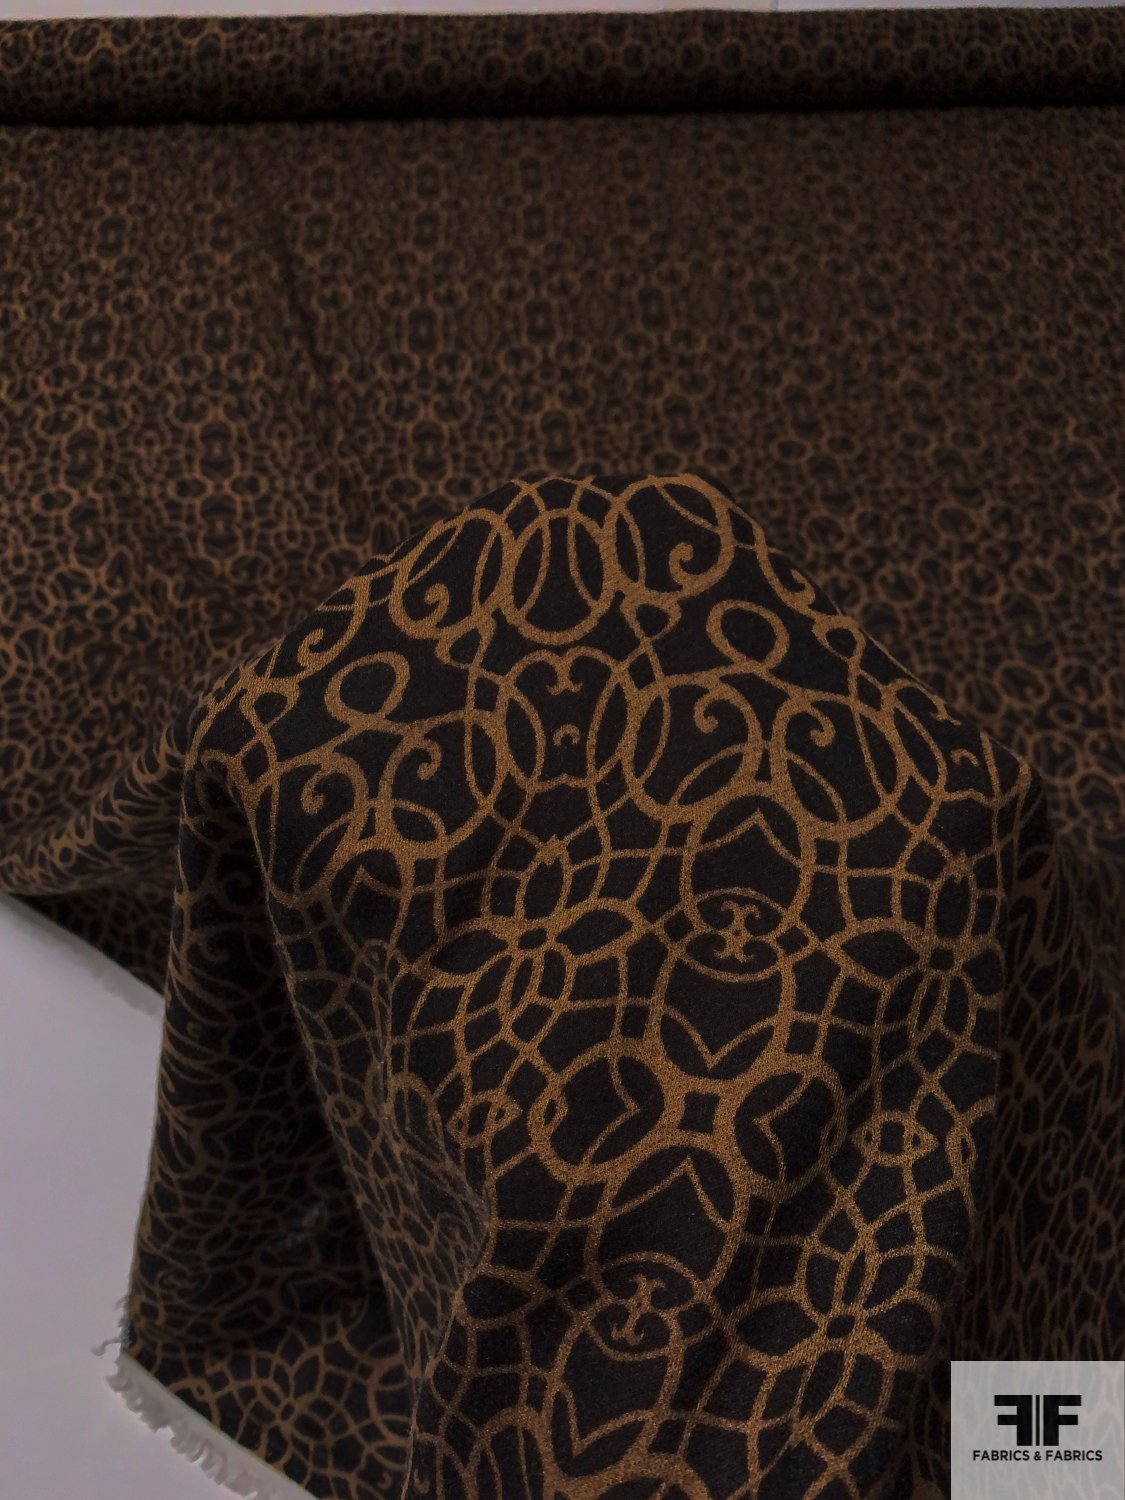 Ornate Damask-Like Printed Rayon Challis Twill - Mocha Brown / Black